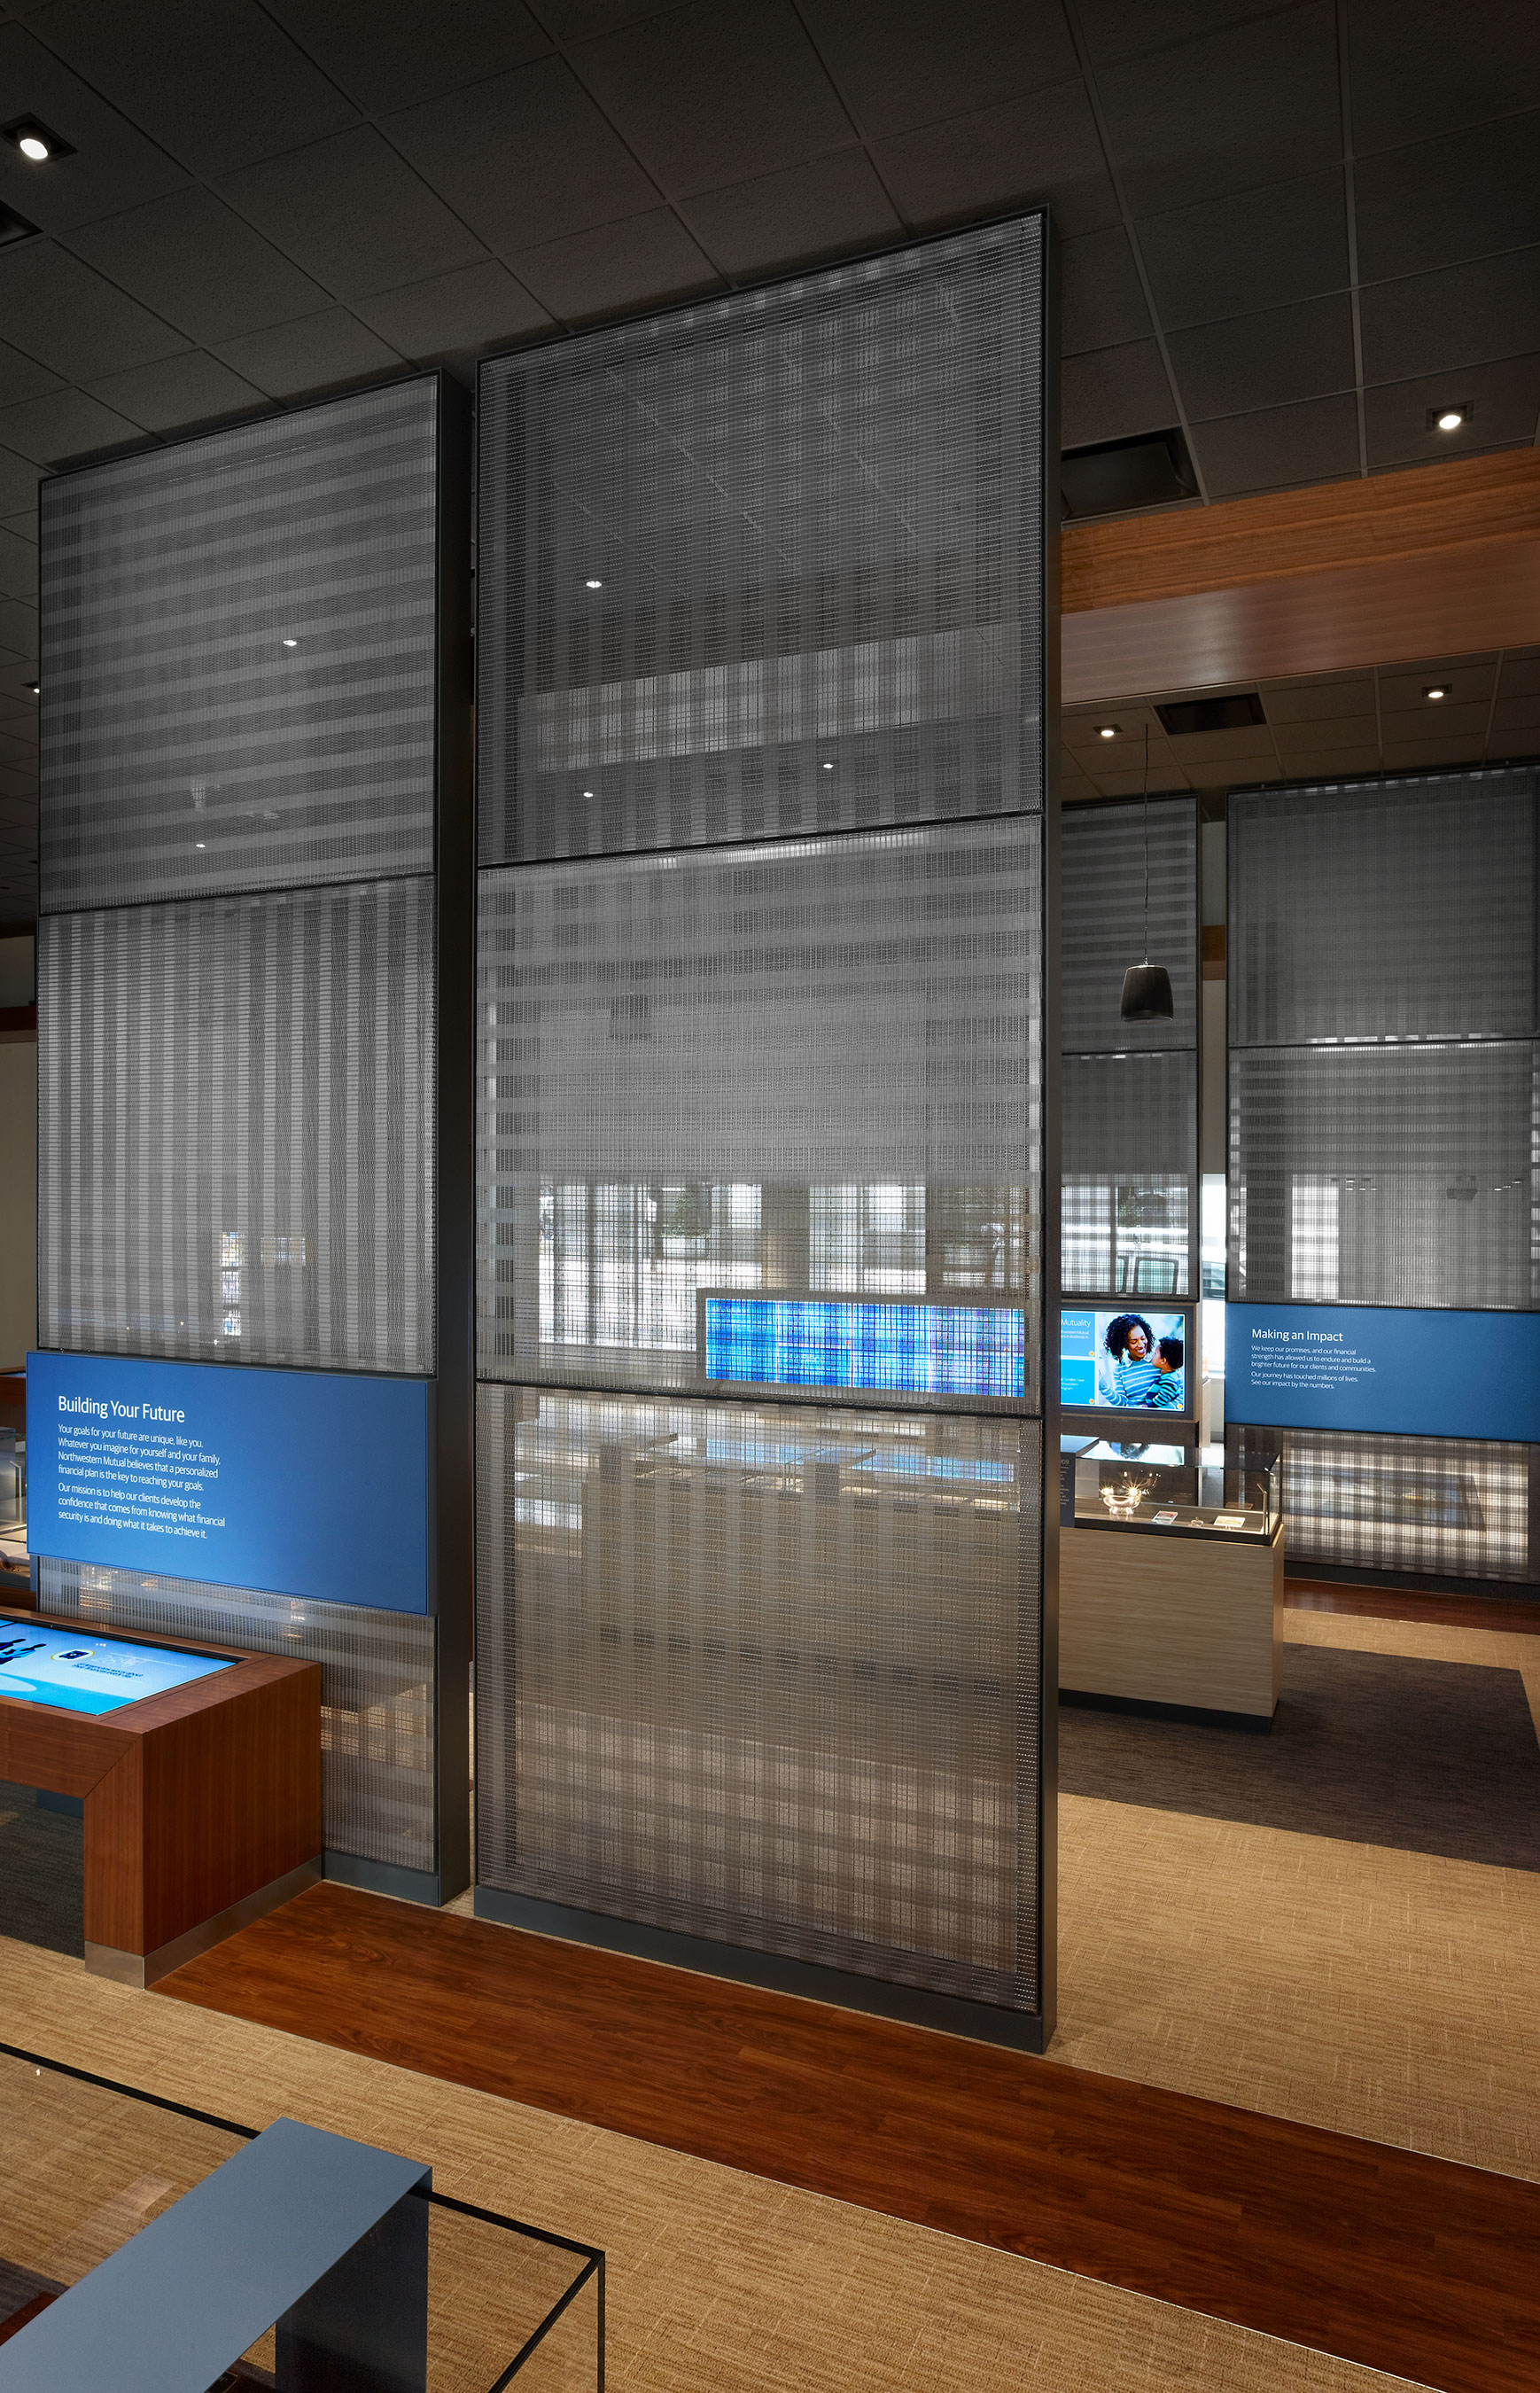 The public exhibit features Banker Wire's  PFZ-53 wire mesh in stainless steel.